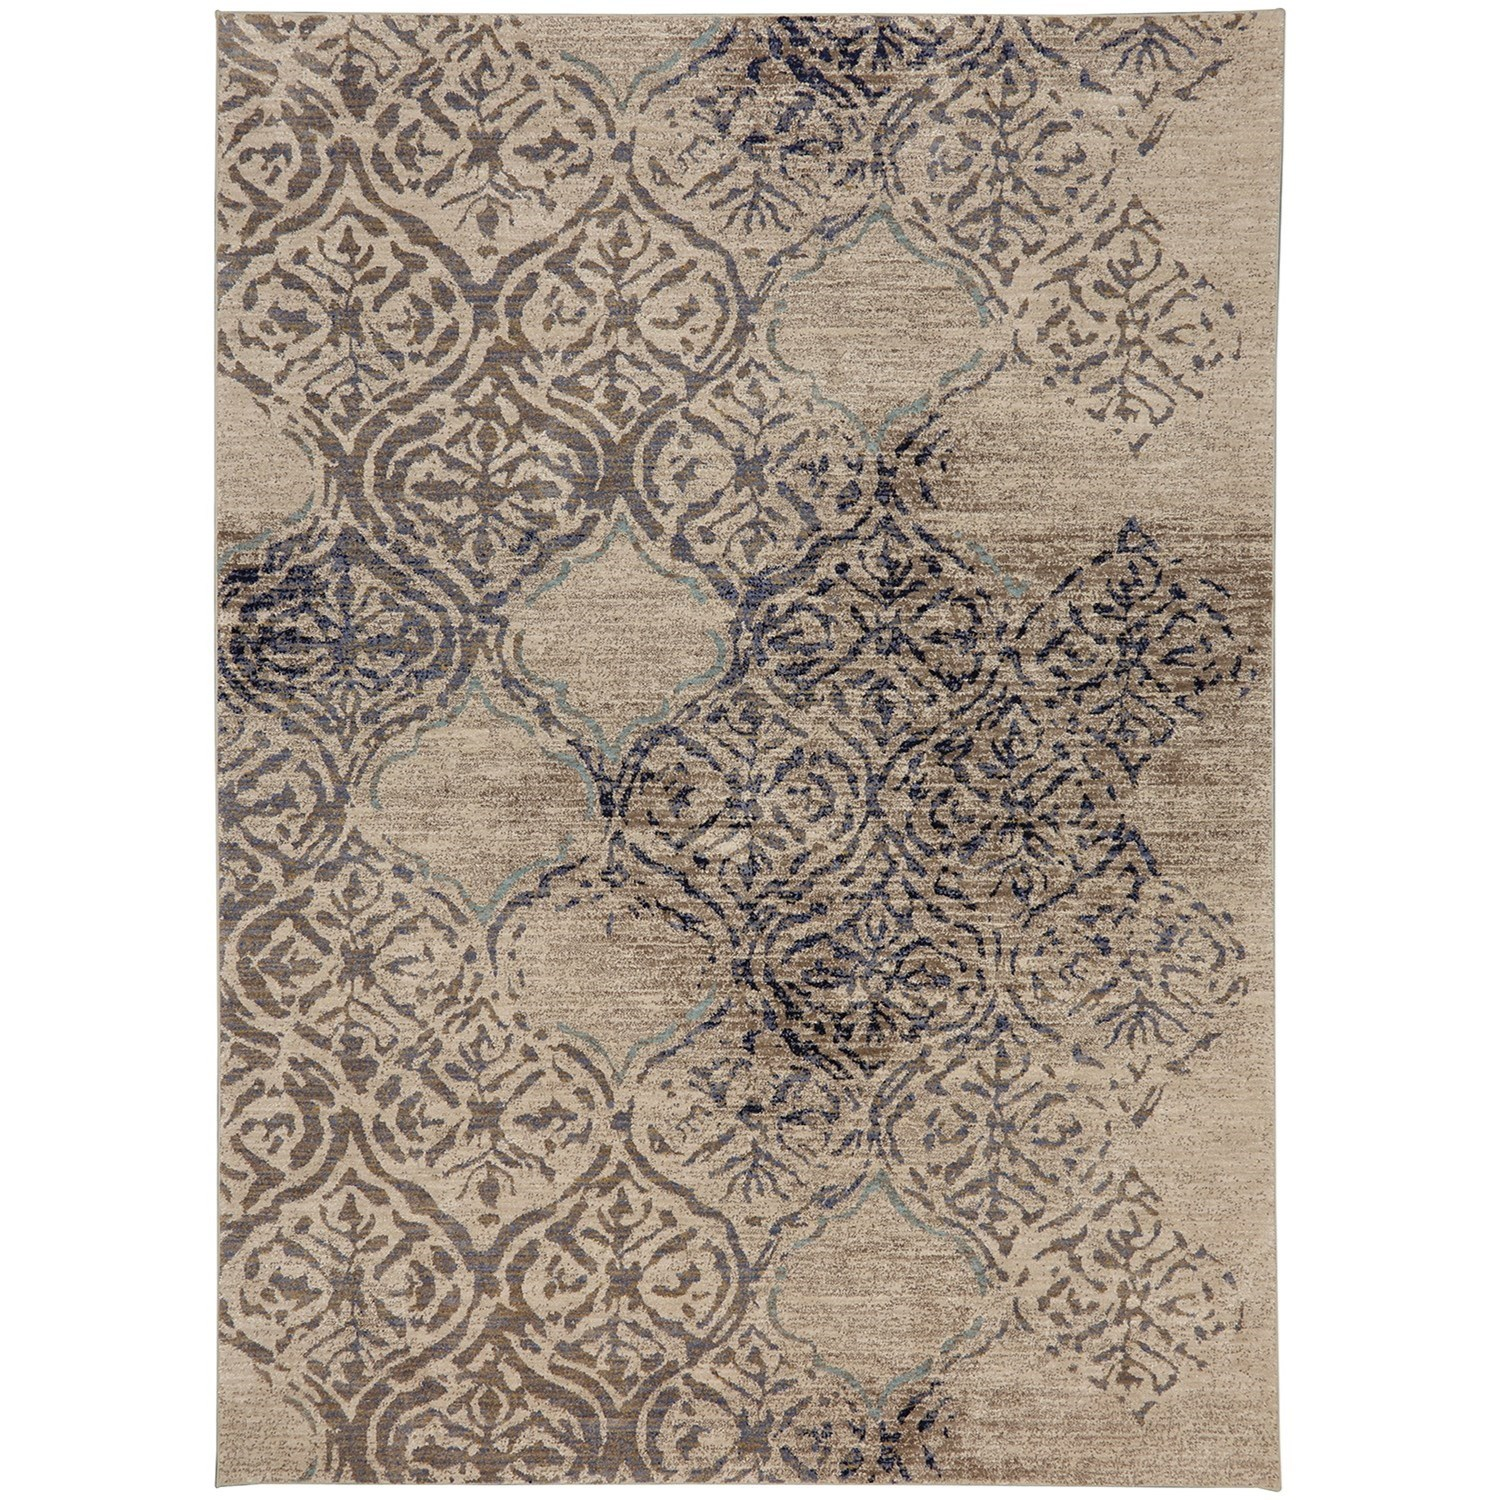 "9' 6""x12' 11"" Rectangle Ornamental Area Rug"